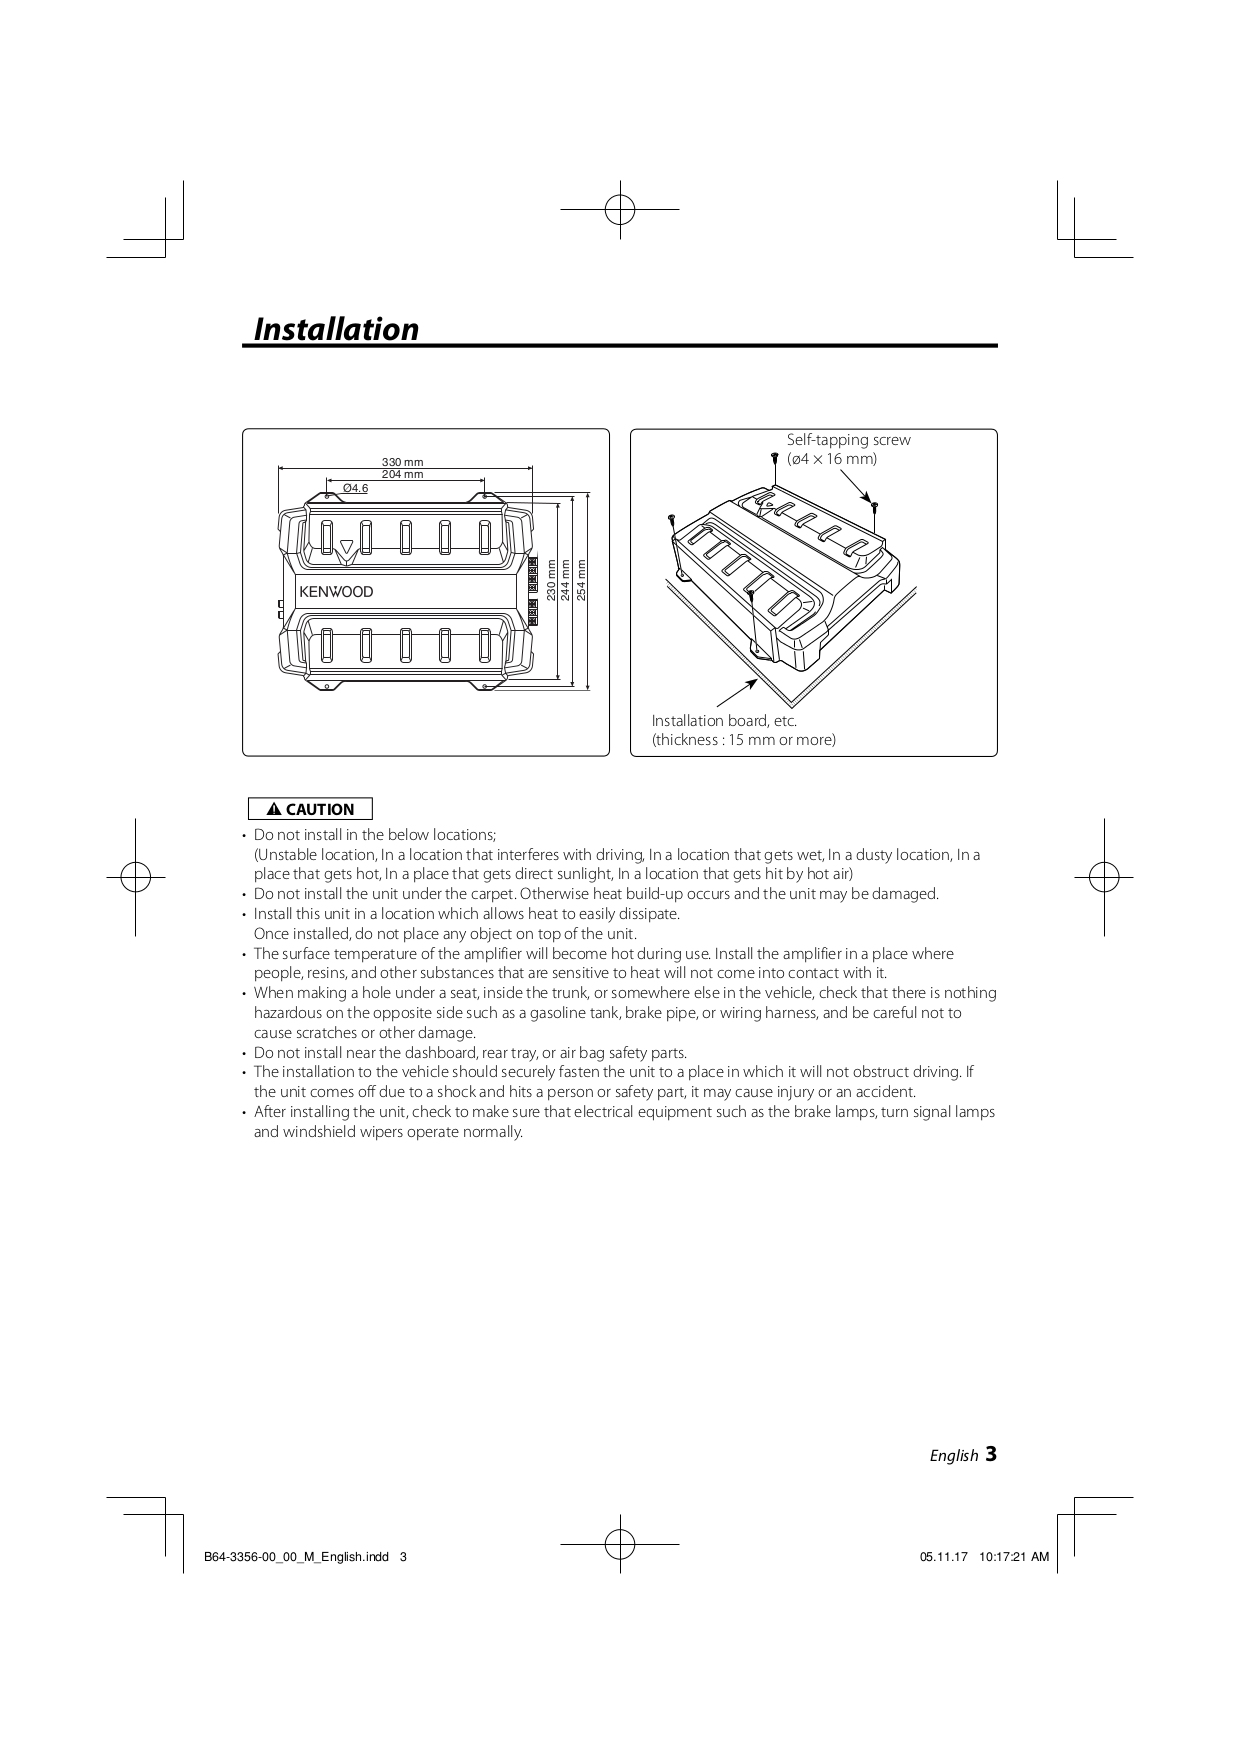 KAC 6203 ins manual.pdf 2 pdf manual for kenwood amp kac 622 kenwood kac-622 wiring harness at soozxer.org